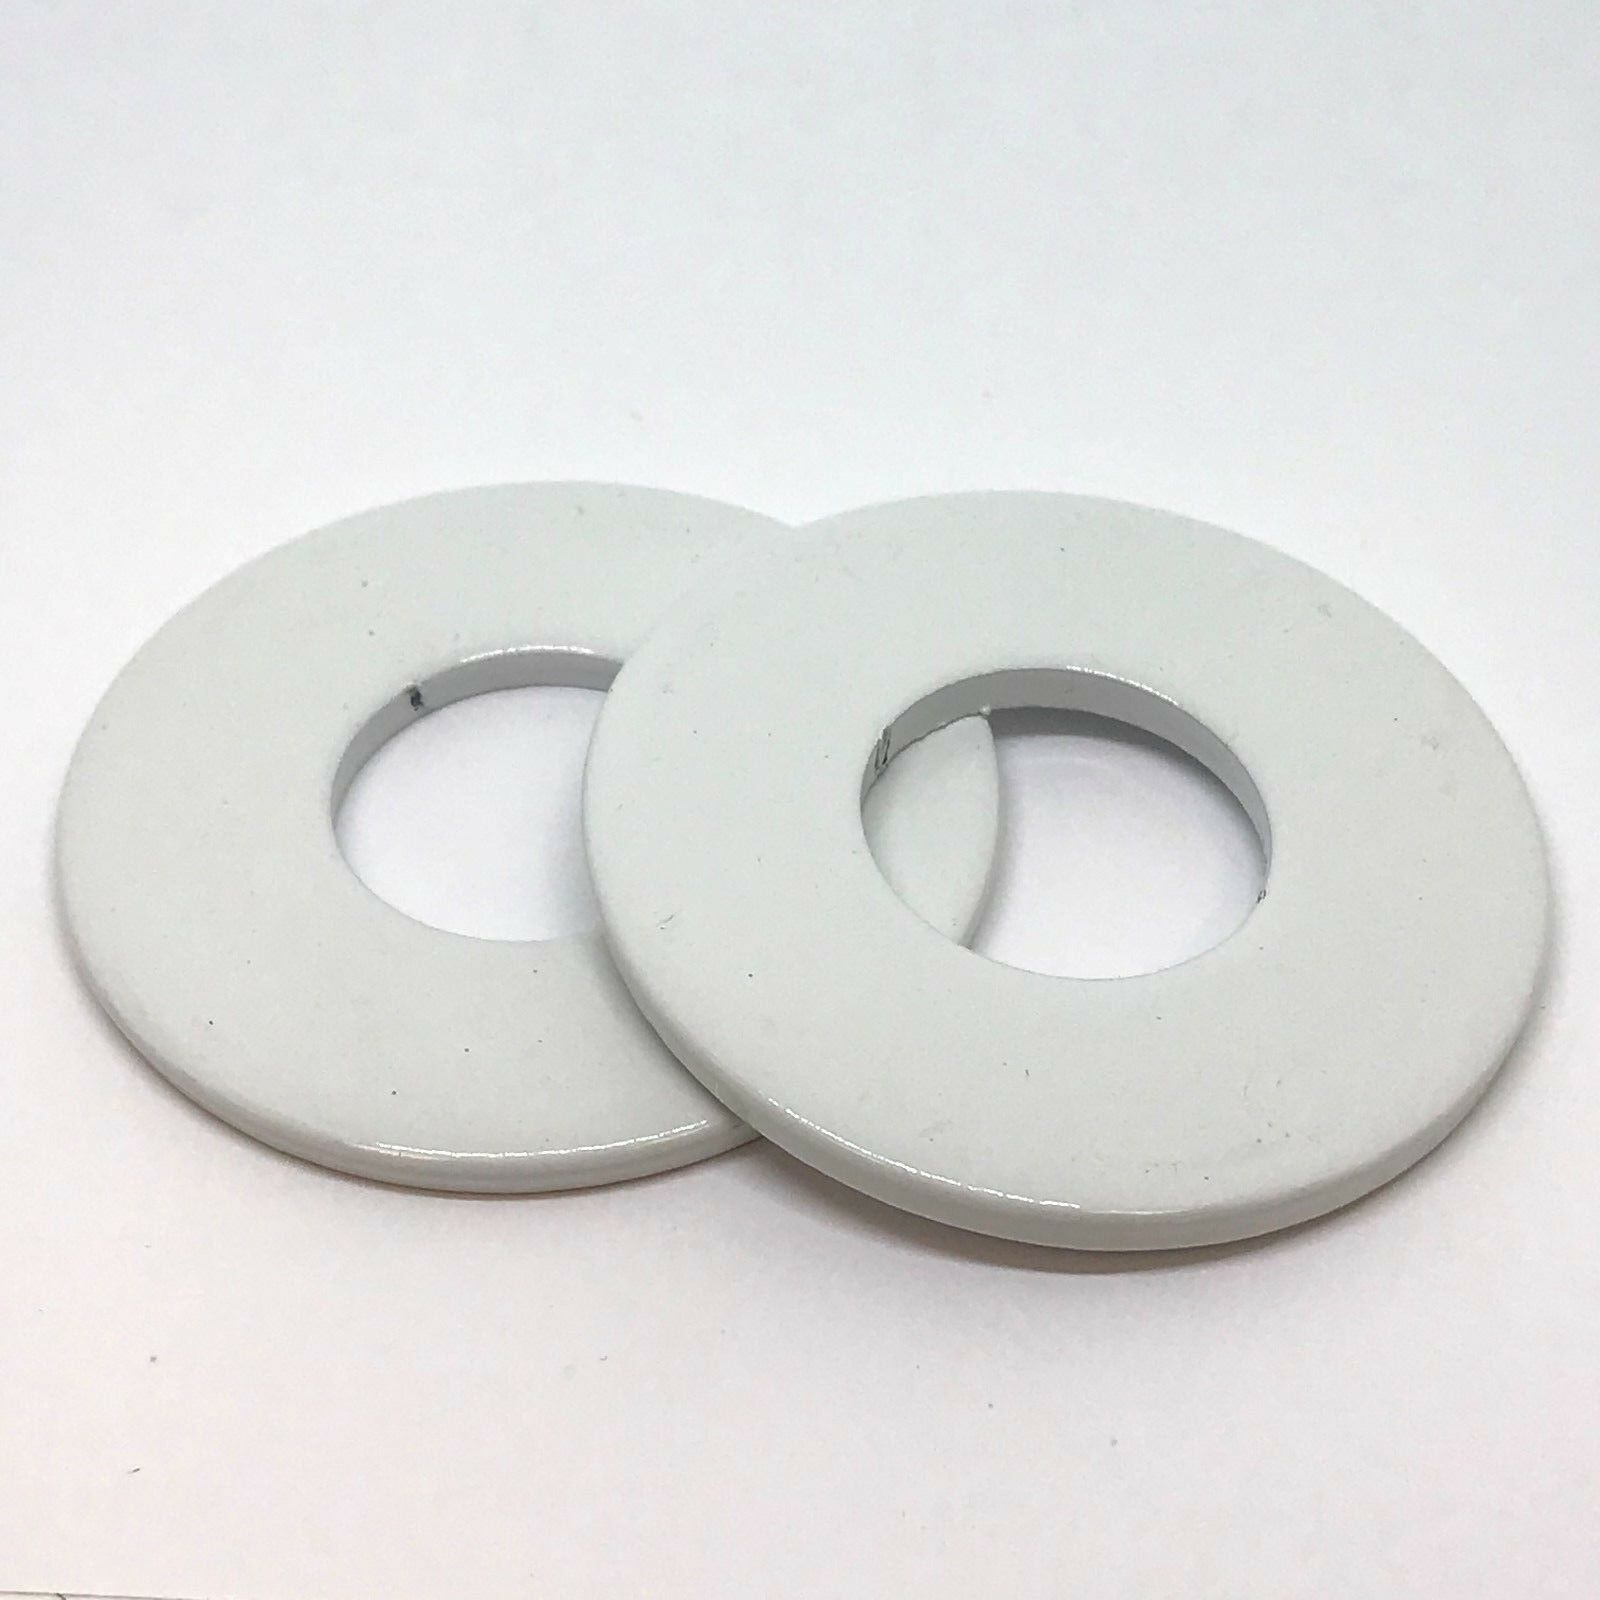 (48) 2-1 2  Powder Coated Washer Toss Washers - Scratch and Dent - Bulk - White